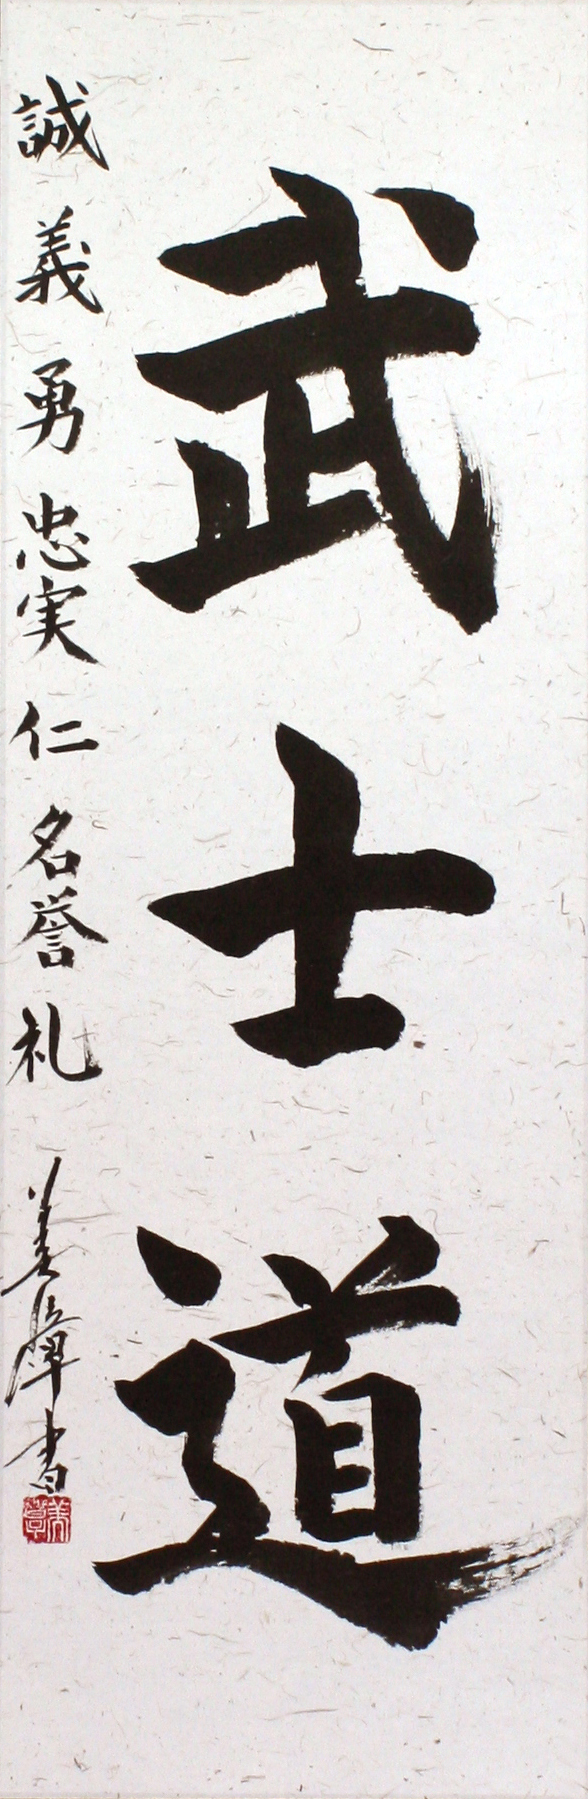 """Bushido"" written out in calligraphy"